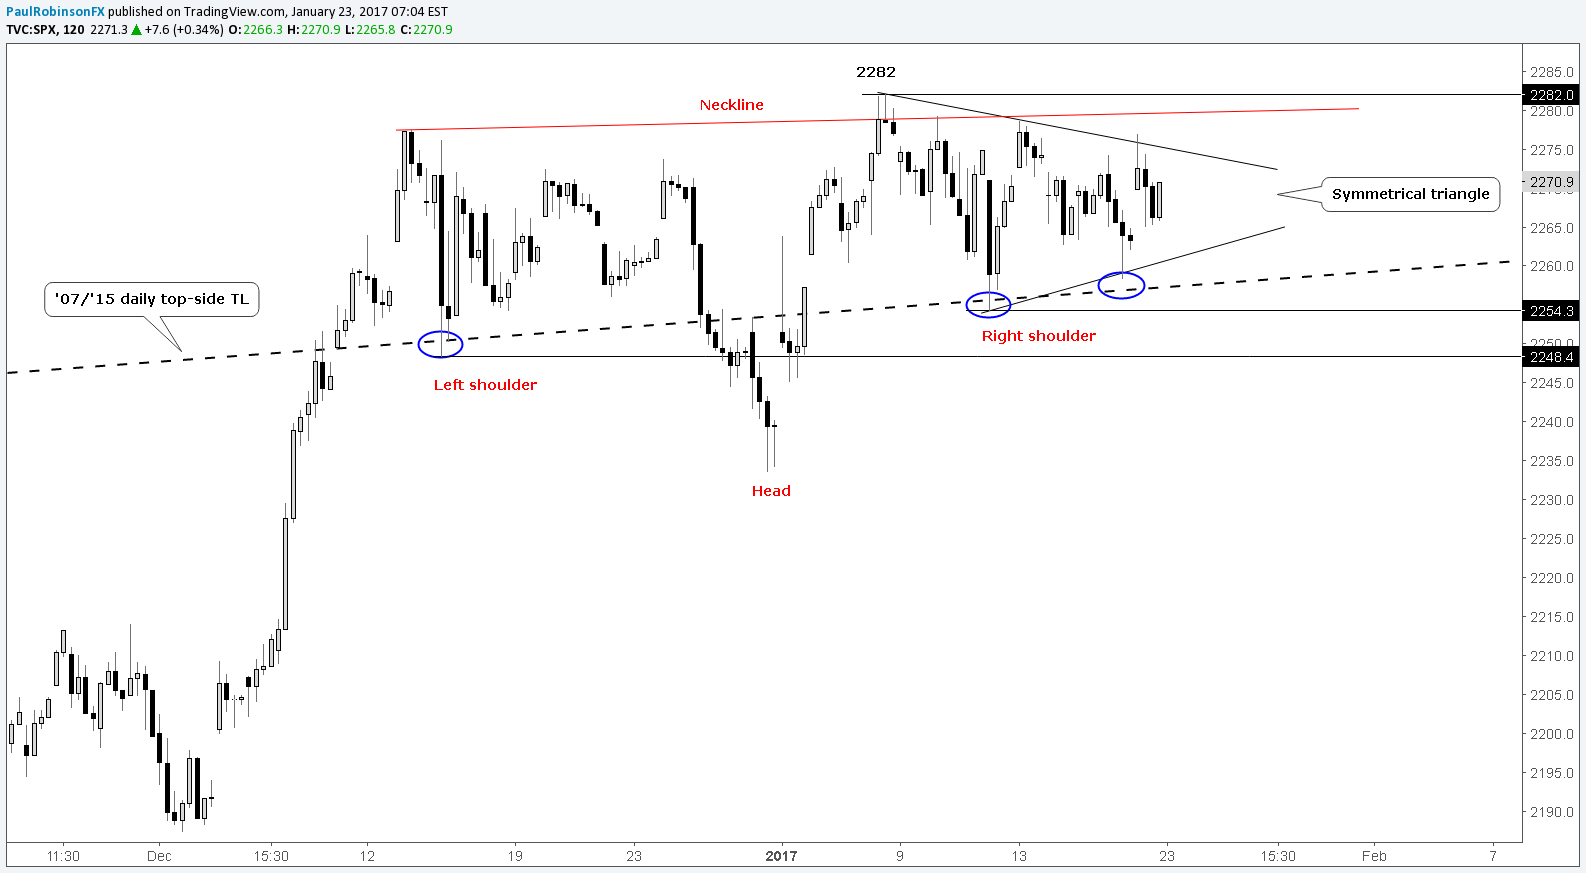 S&P 500 Technical Analysis: Short-term Chart Pattern in View